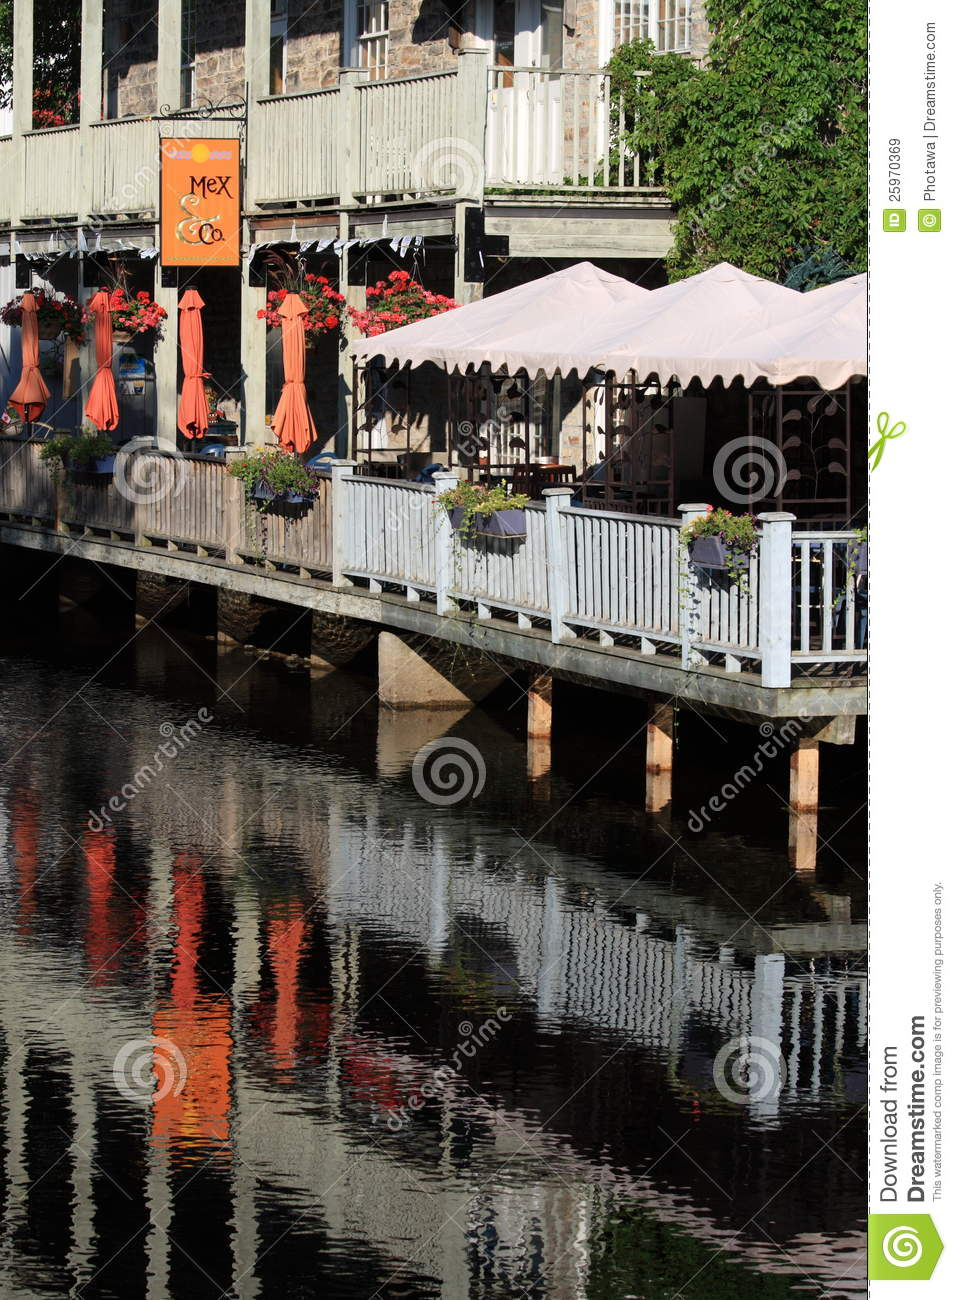 Mexicali Rosa's in Perth editorial stock image  Image of